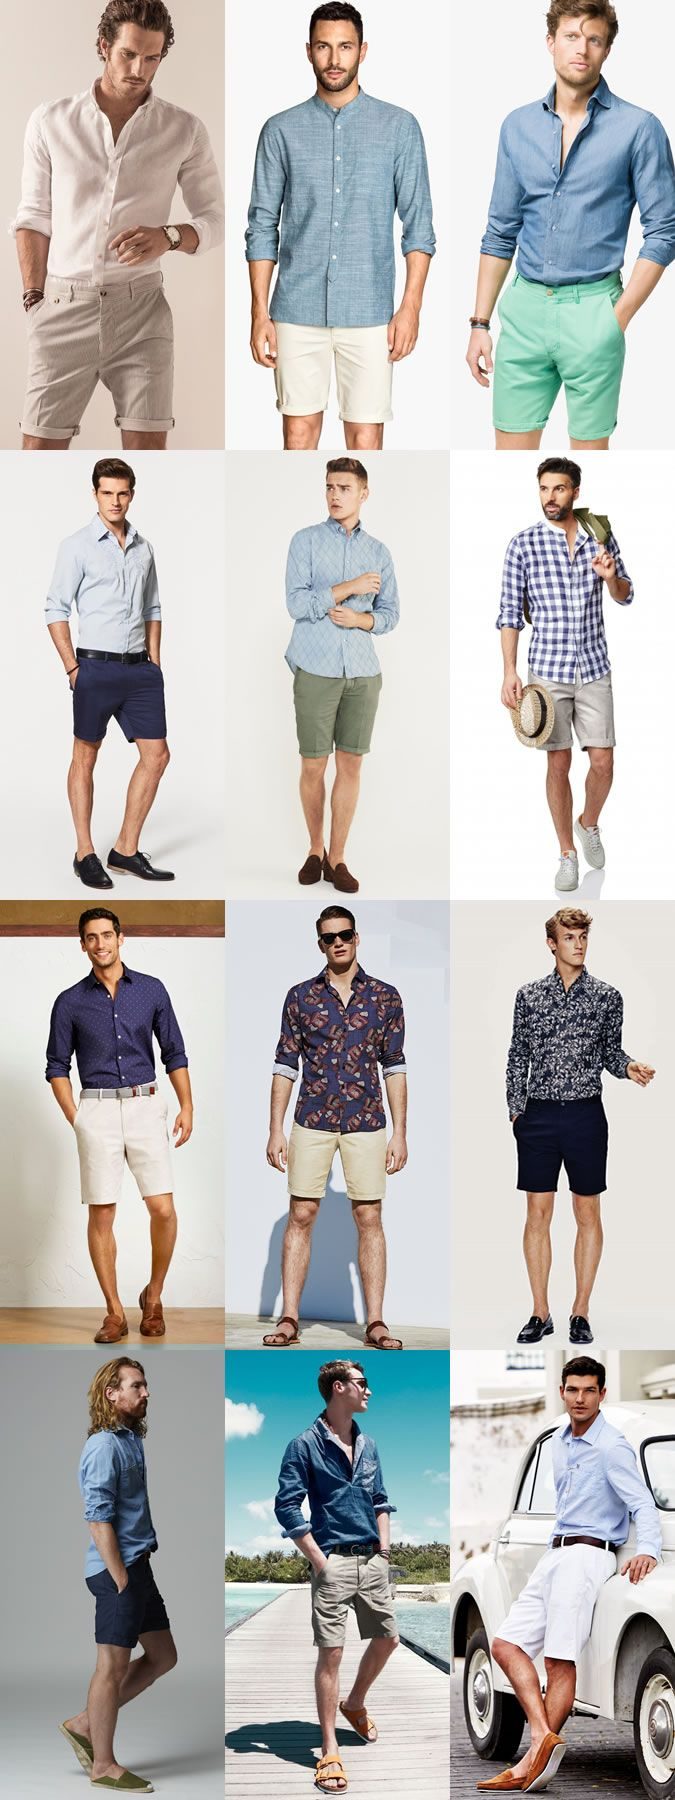 6 Go-To Outfit Combinations For Men images